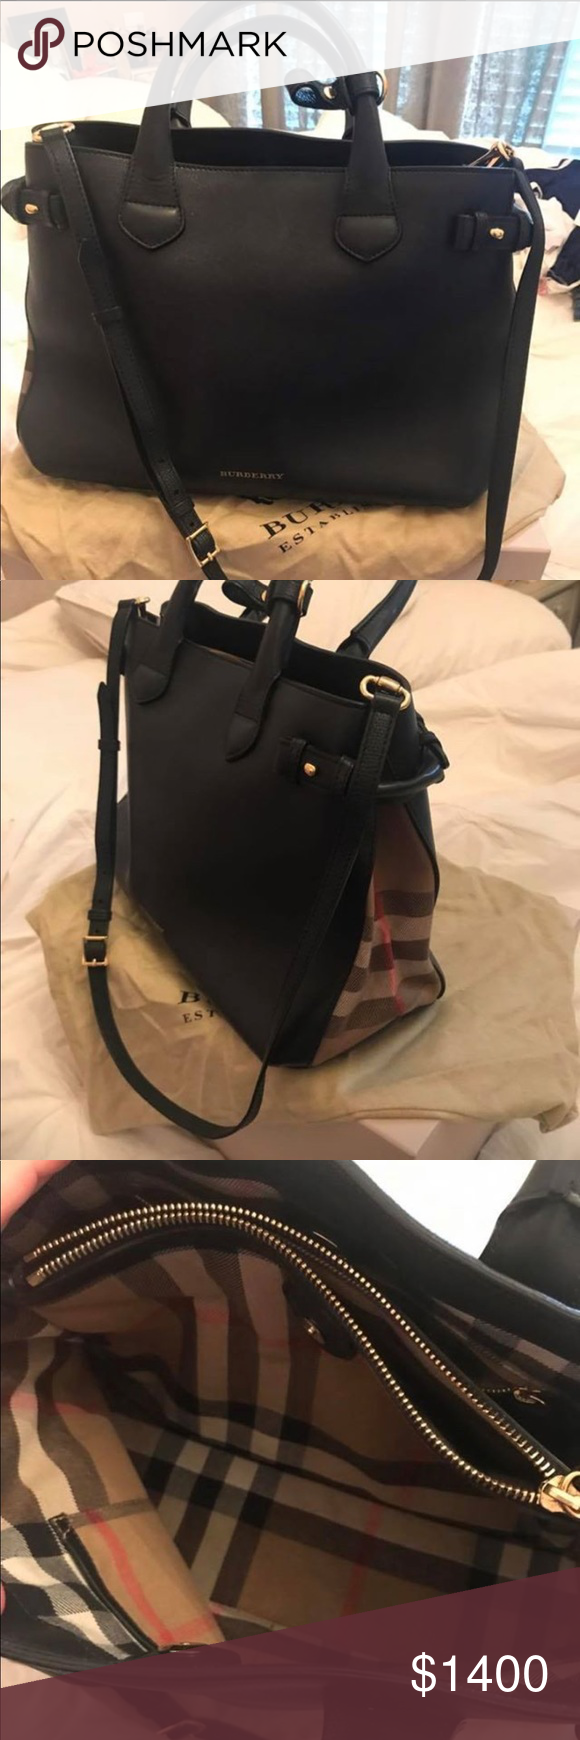 e24eb4b1cf0 Burberry BANNER tote Black leather with check side paneling, Burberry BANNER  style tote, medium